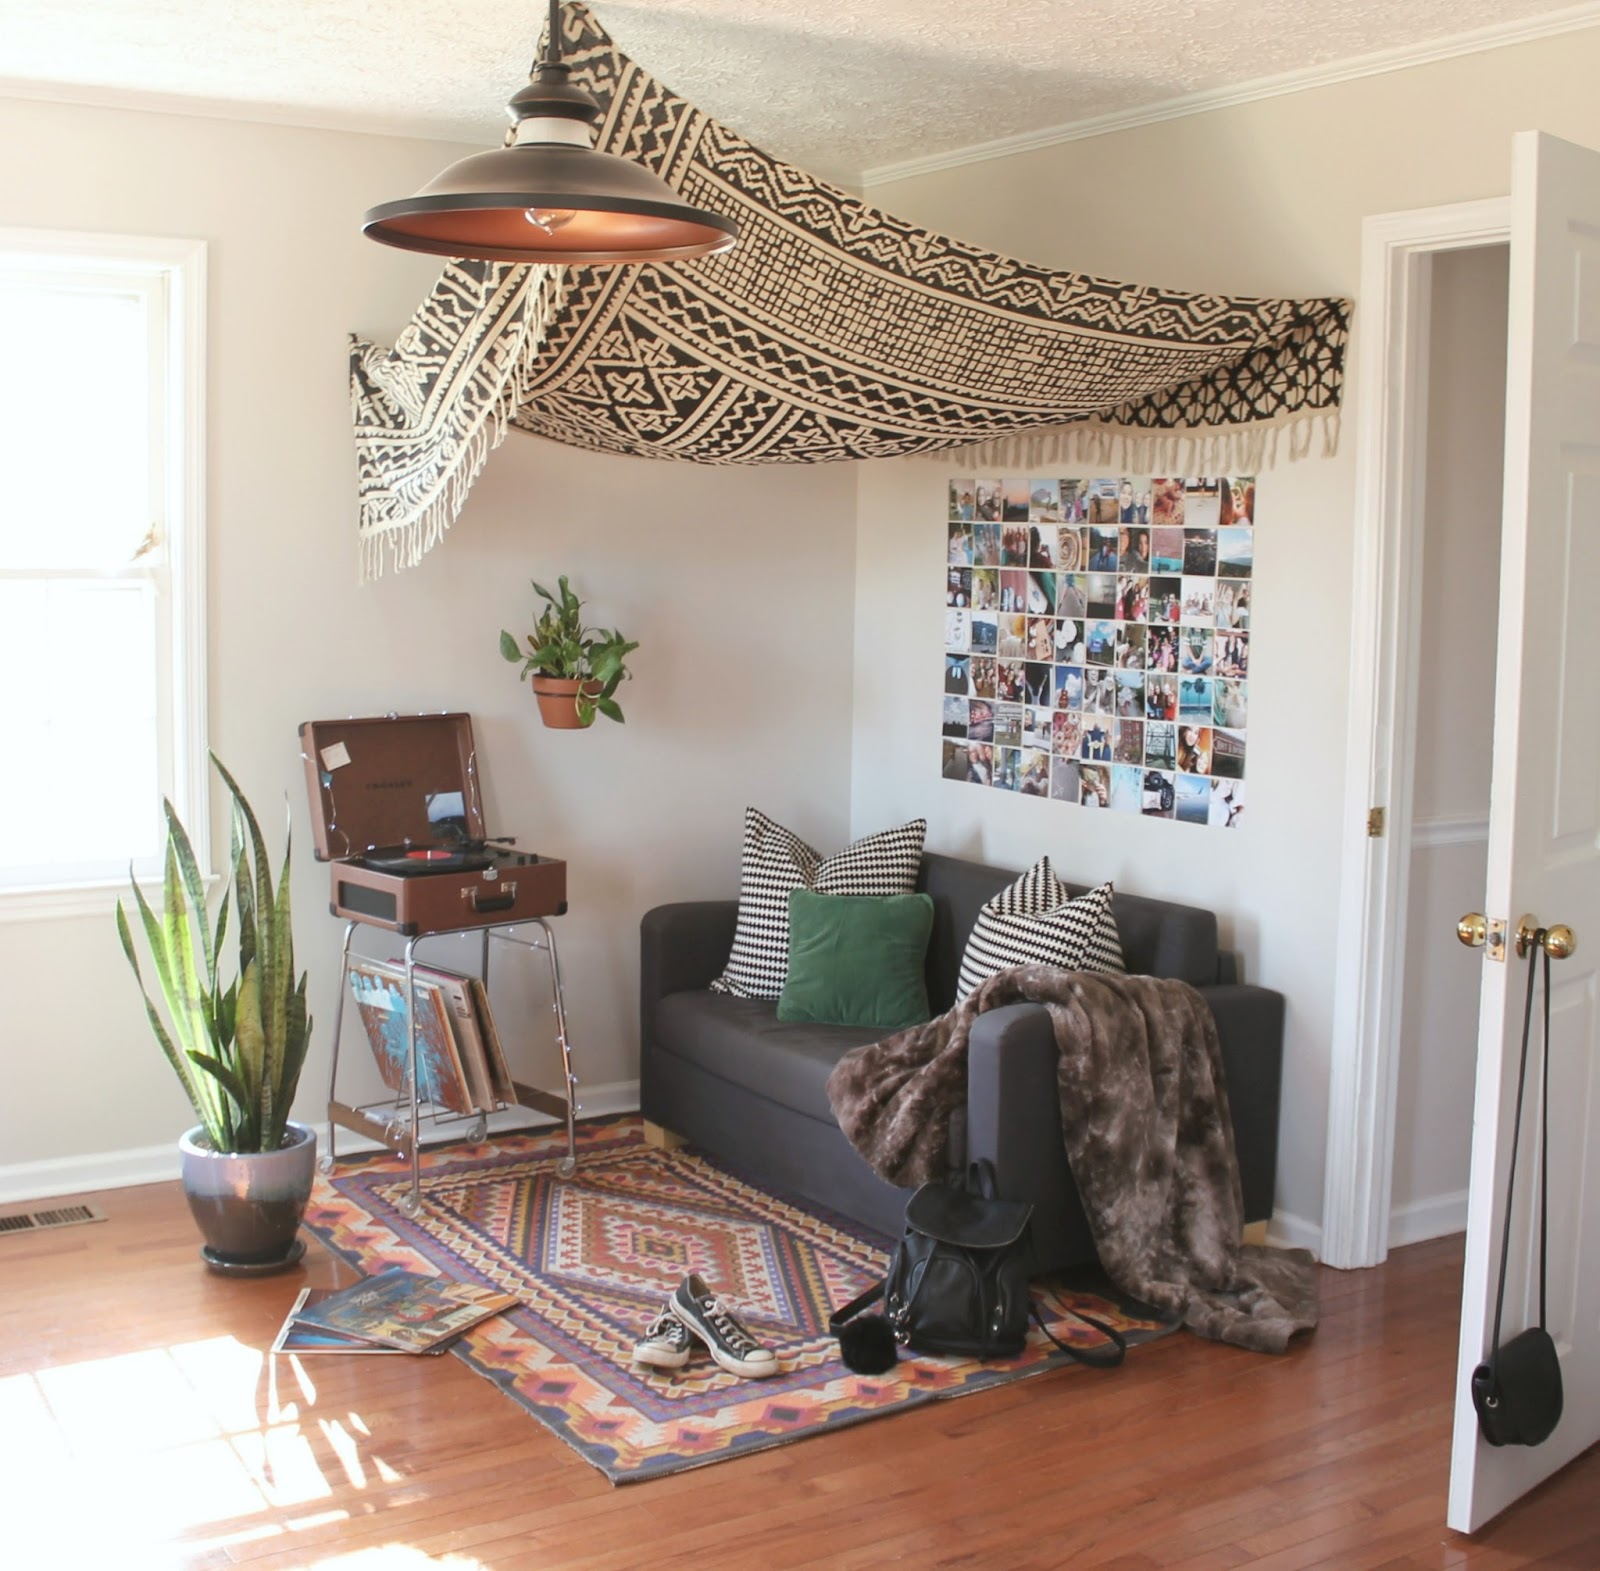 Shared Bedroom Ideas Teenagers The Little Farm Diary Teen Girls 39 Room Reveal A Boho